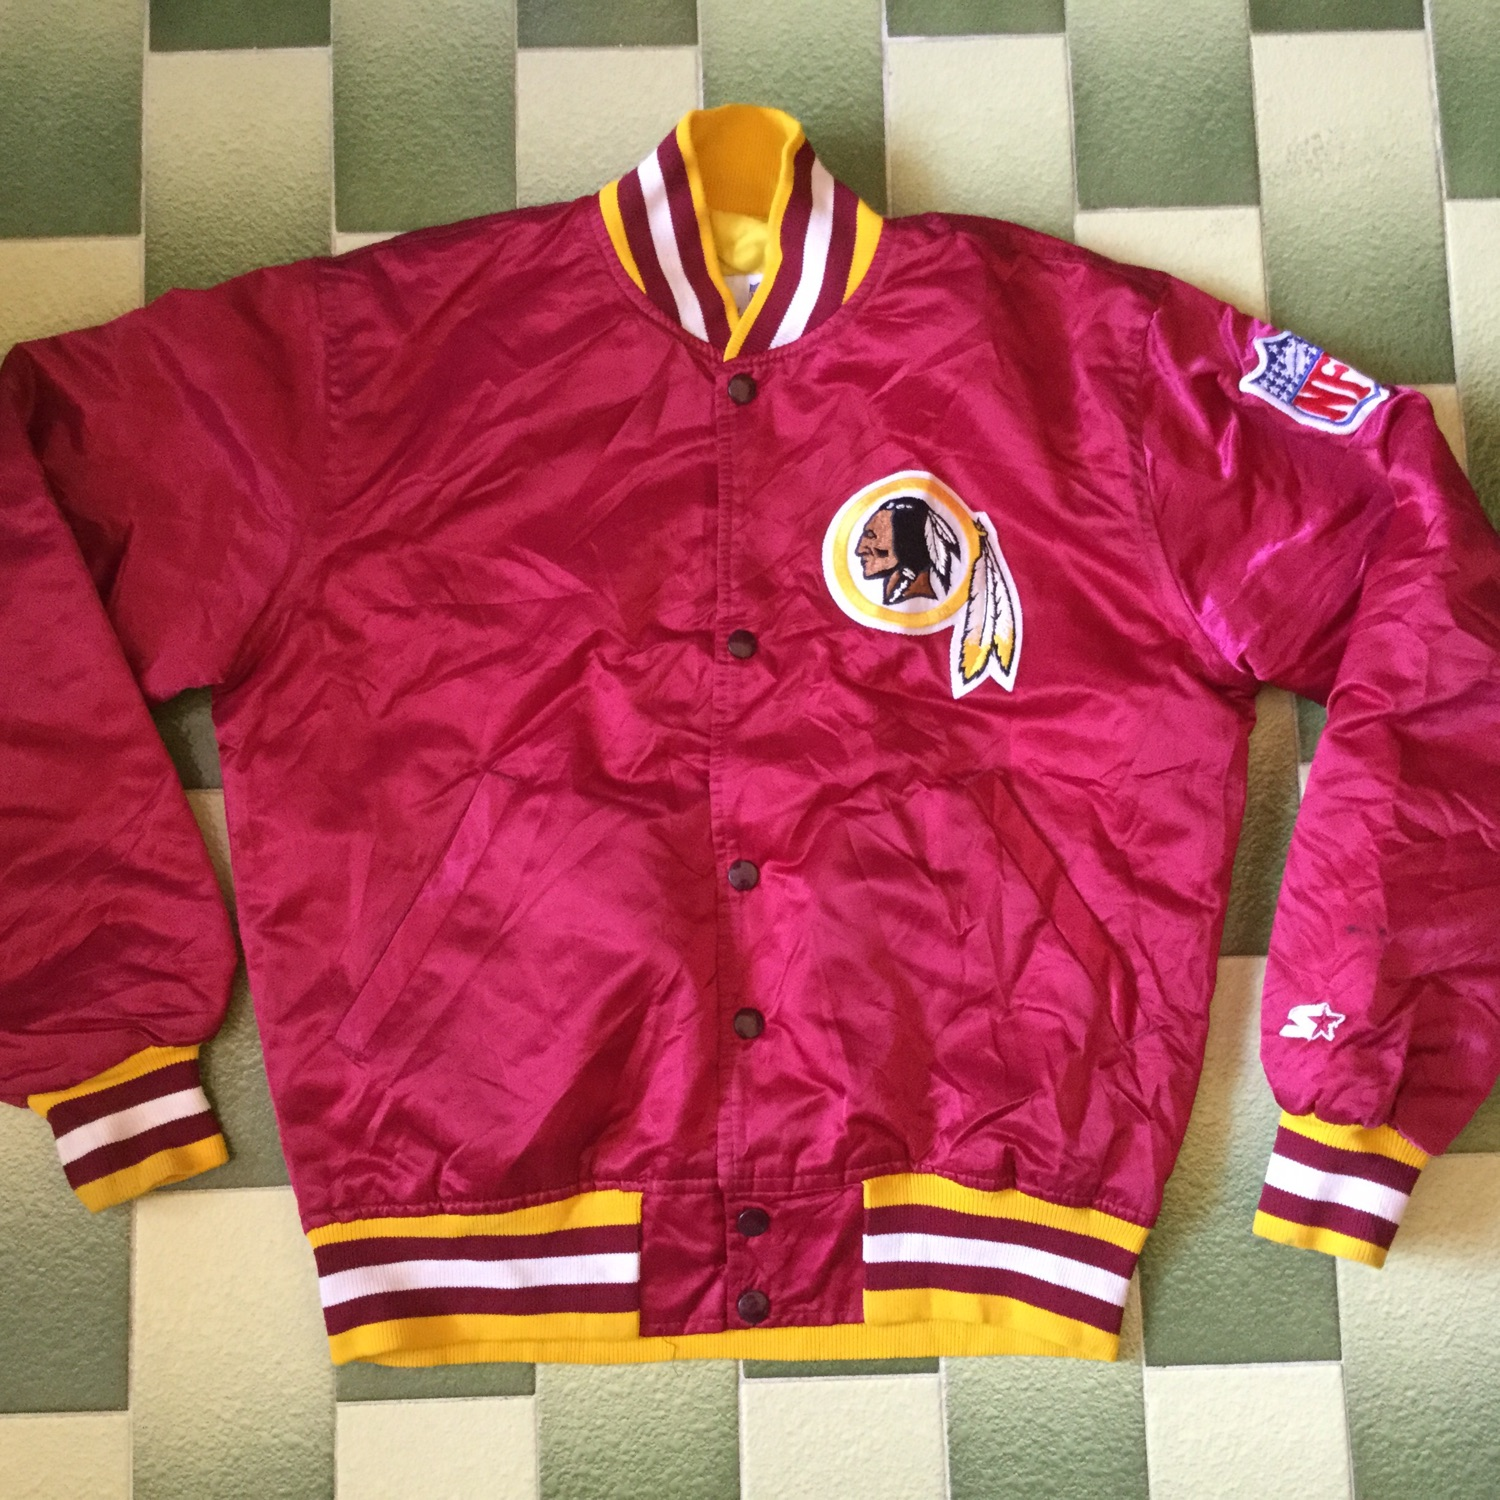 buy online fb181 a6c36 Vintage Washington Redskins Proline Starter Jacket